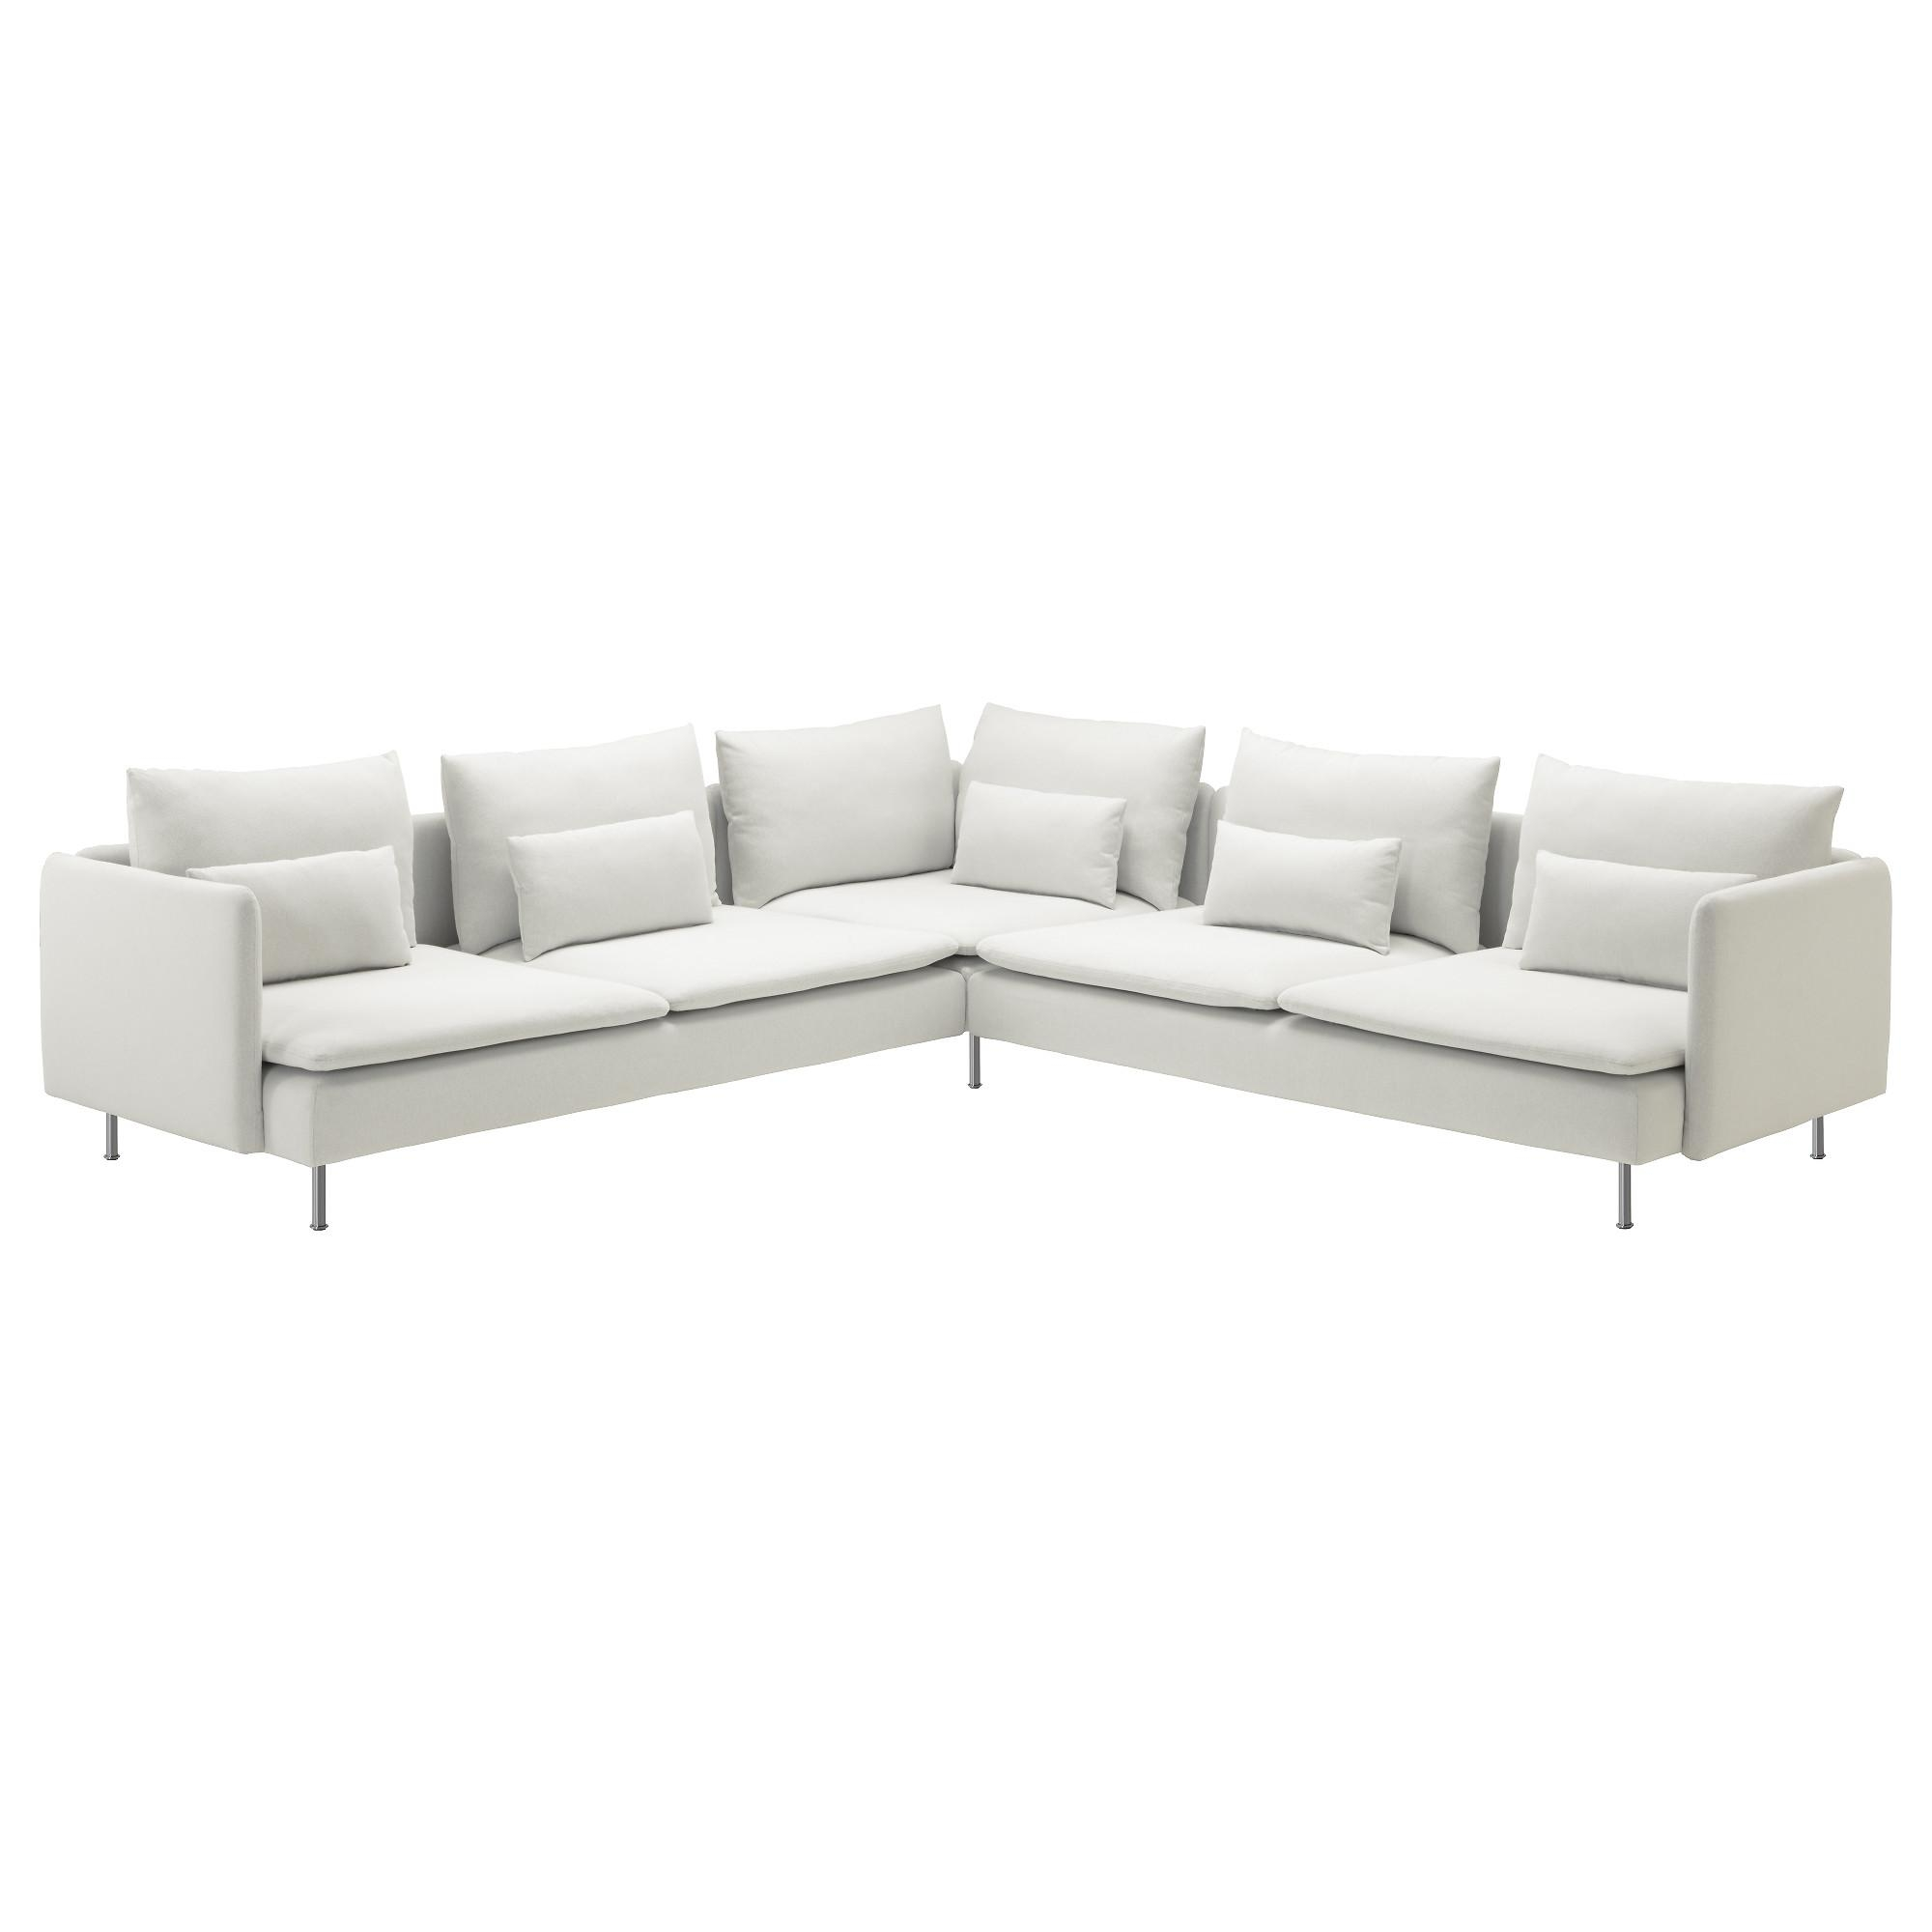 Söderhamn Series – Ikea With Regard To 2 Seat Sectional Sofas (Image 12 of 15)